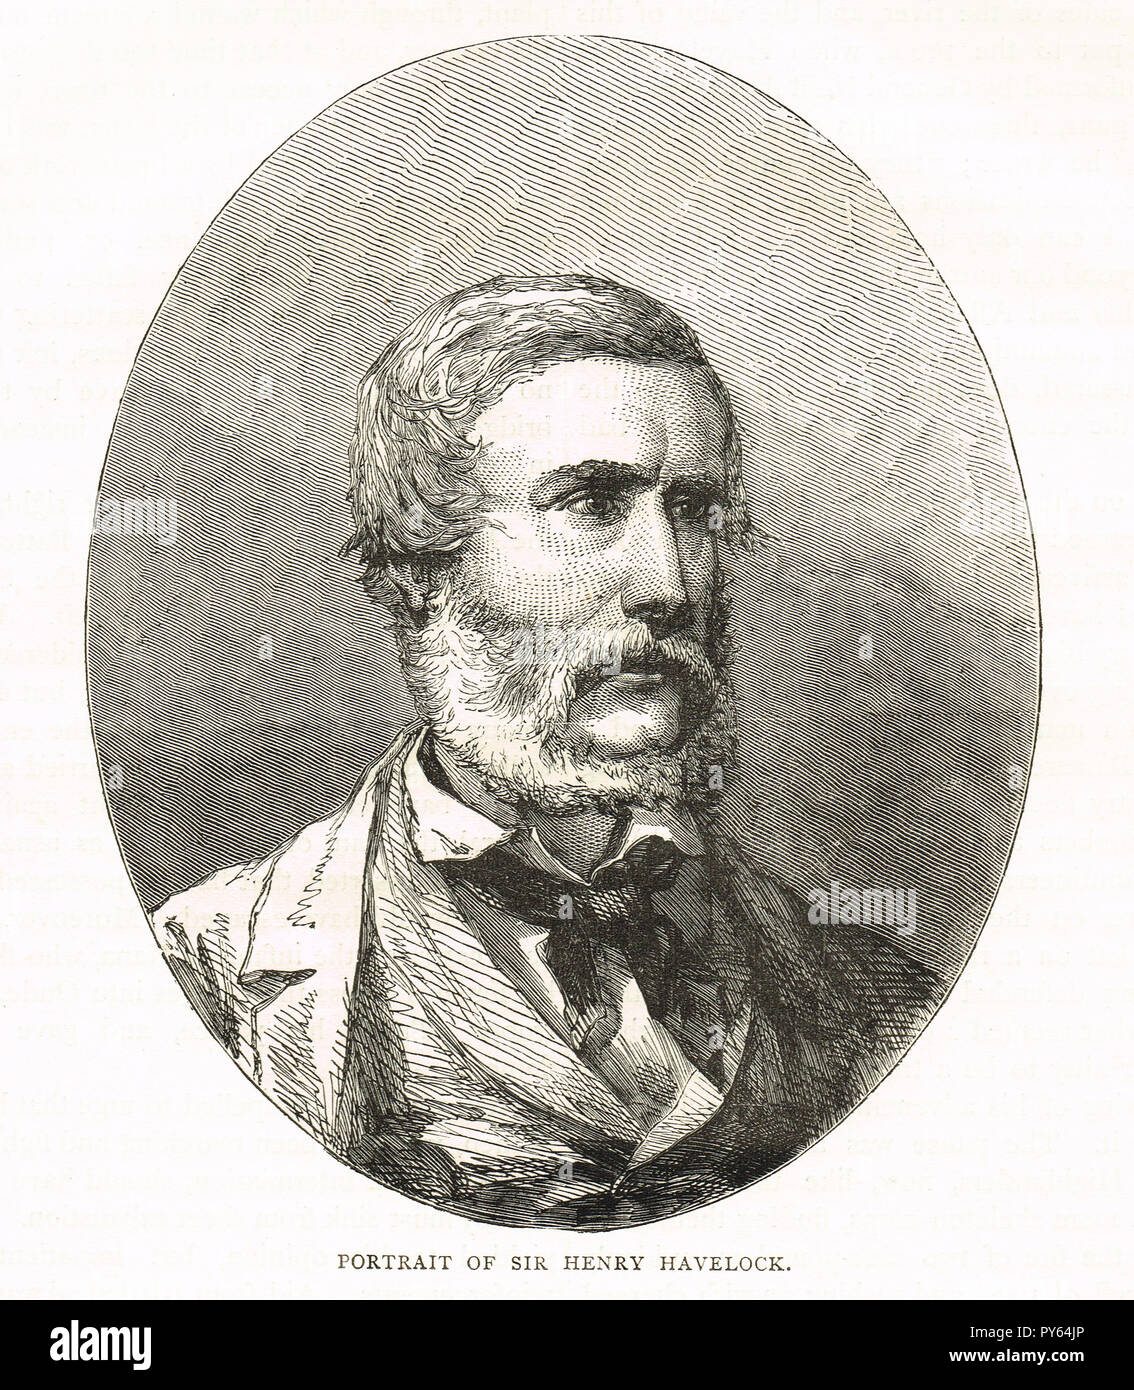 Major General Sir Henry Havelock. British general, particularly associated with India, recaptured Cawnpore during the Indian Rebellion of 1857 Stock Photo